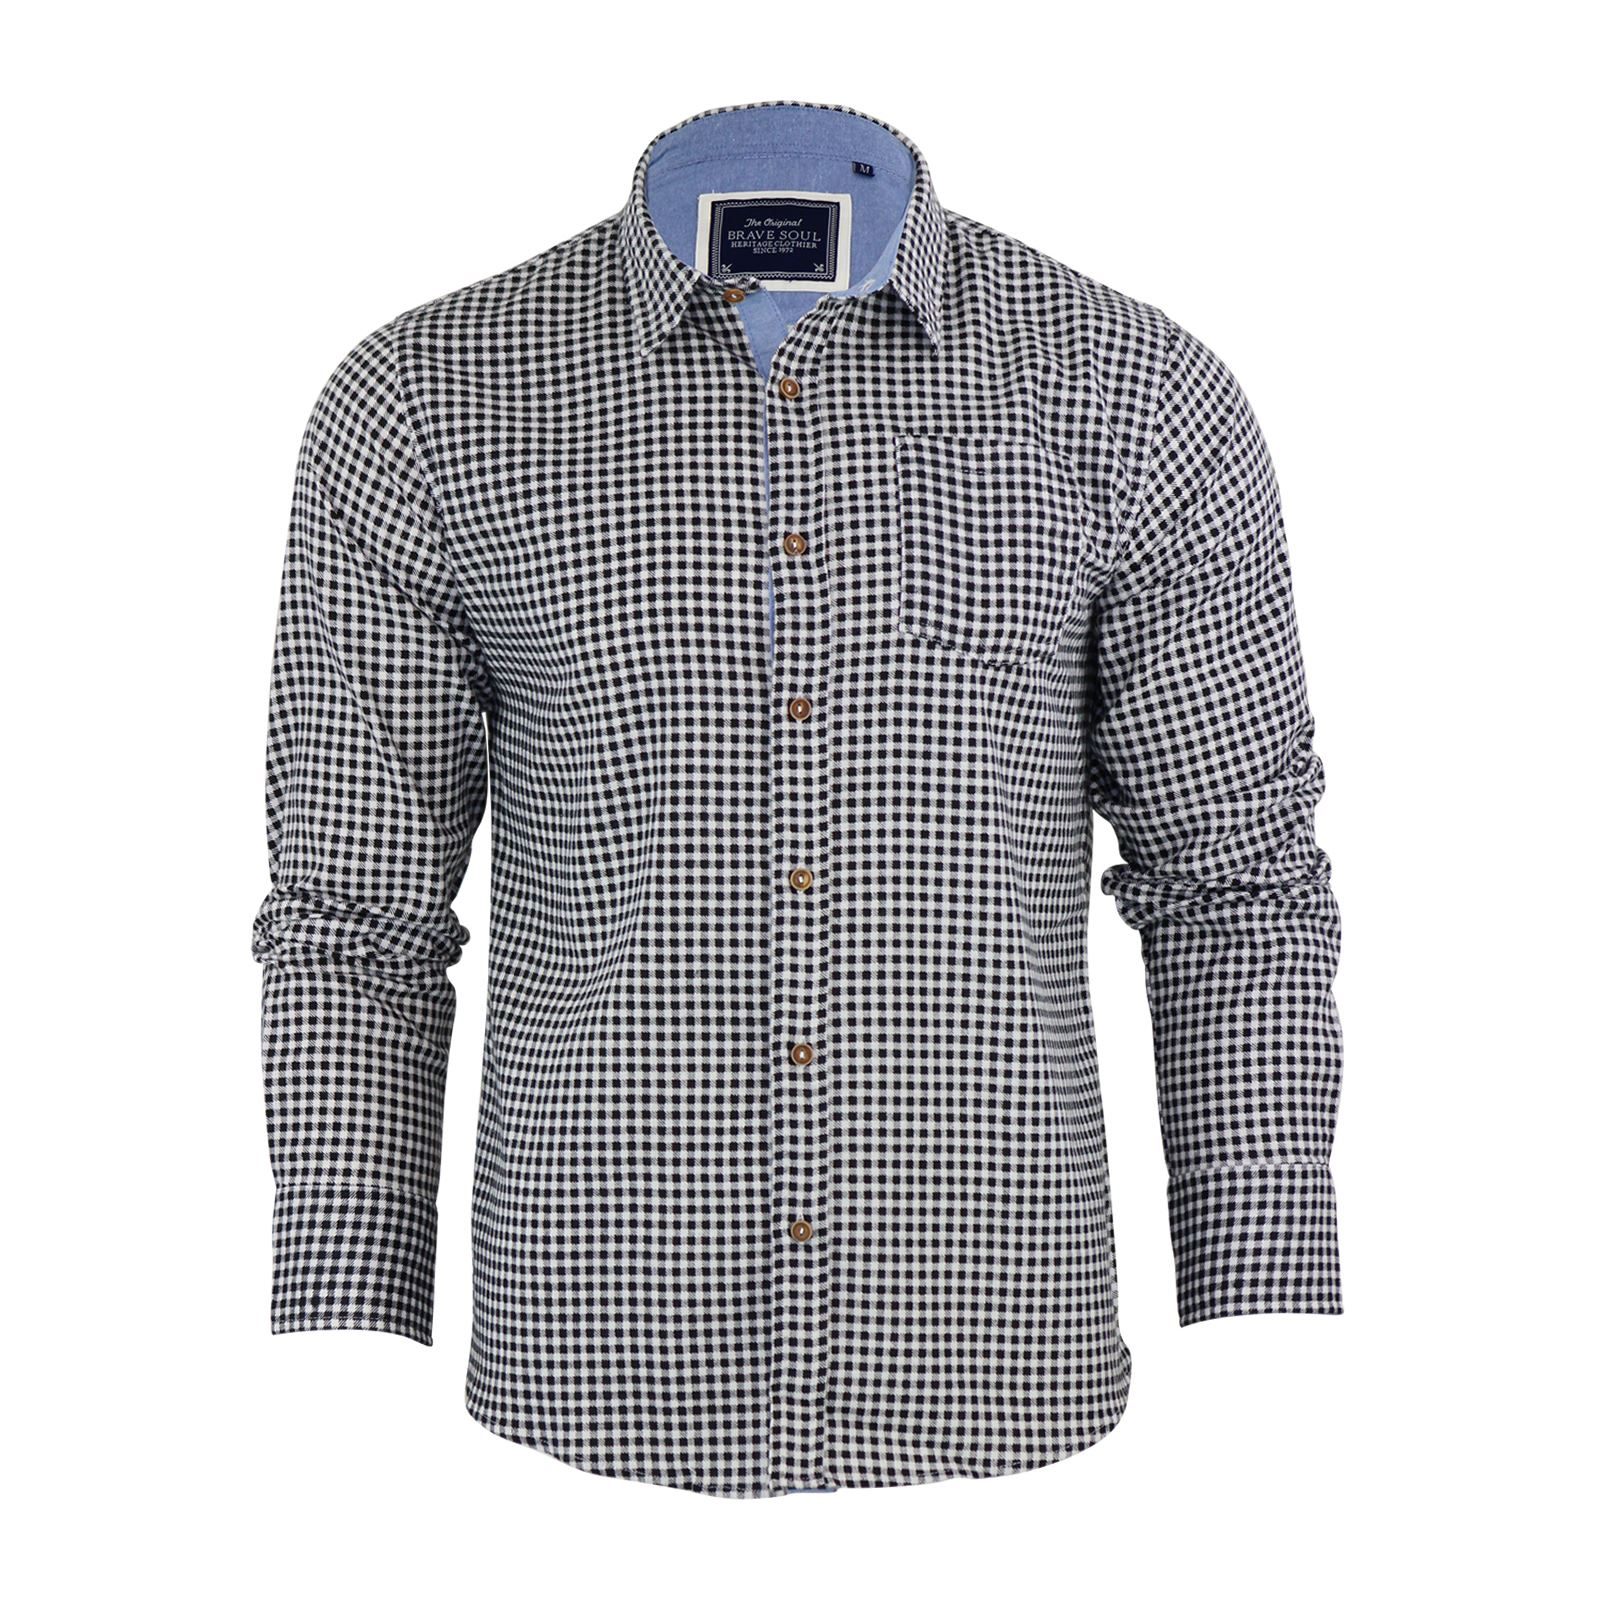 Brave-Soul-Mens-Check-Shirt-Flannel-Brushed-Cotton-Long-Sleeve-Casual-Top thumbnail 10